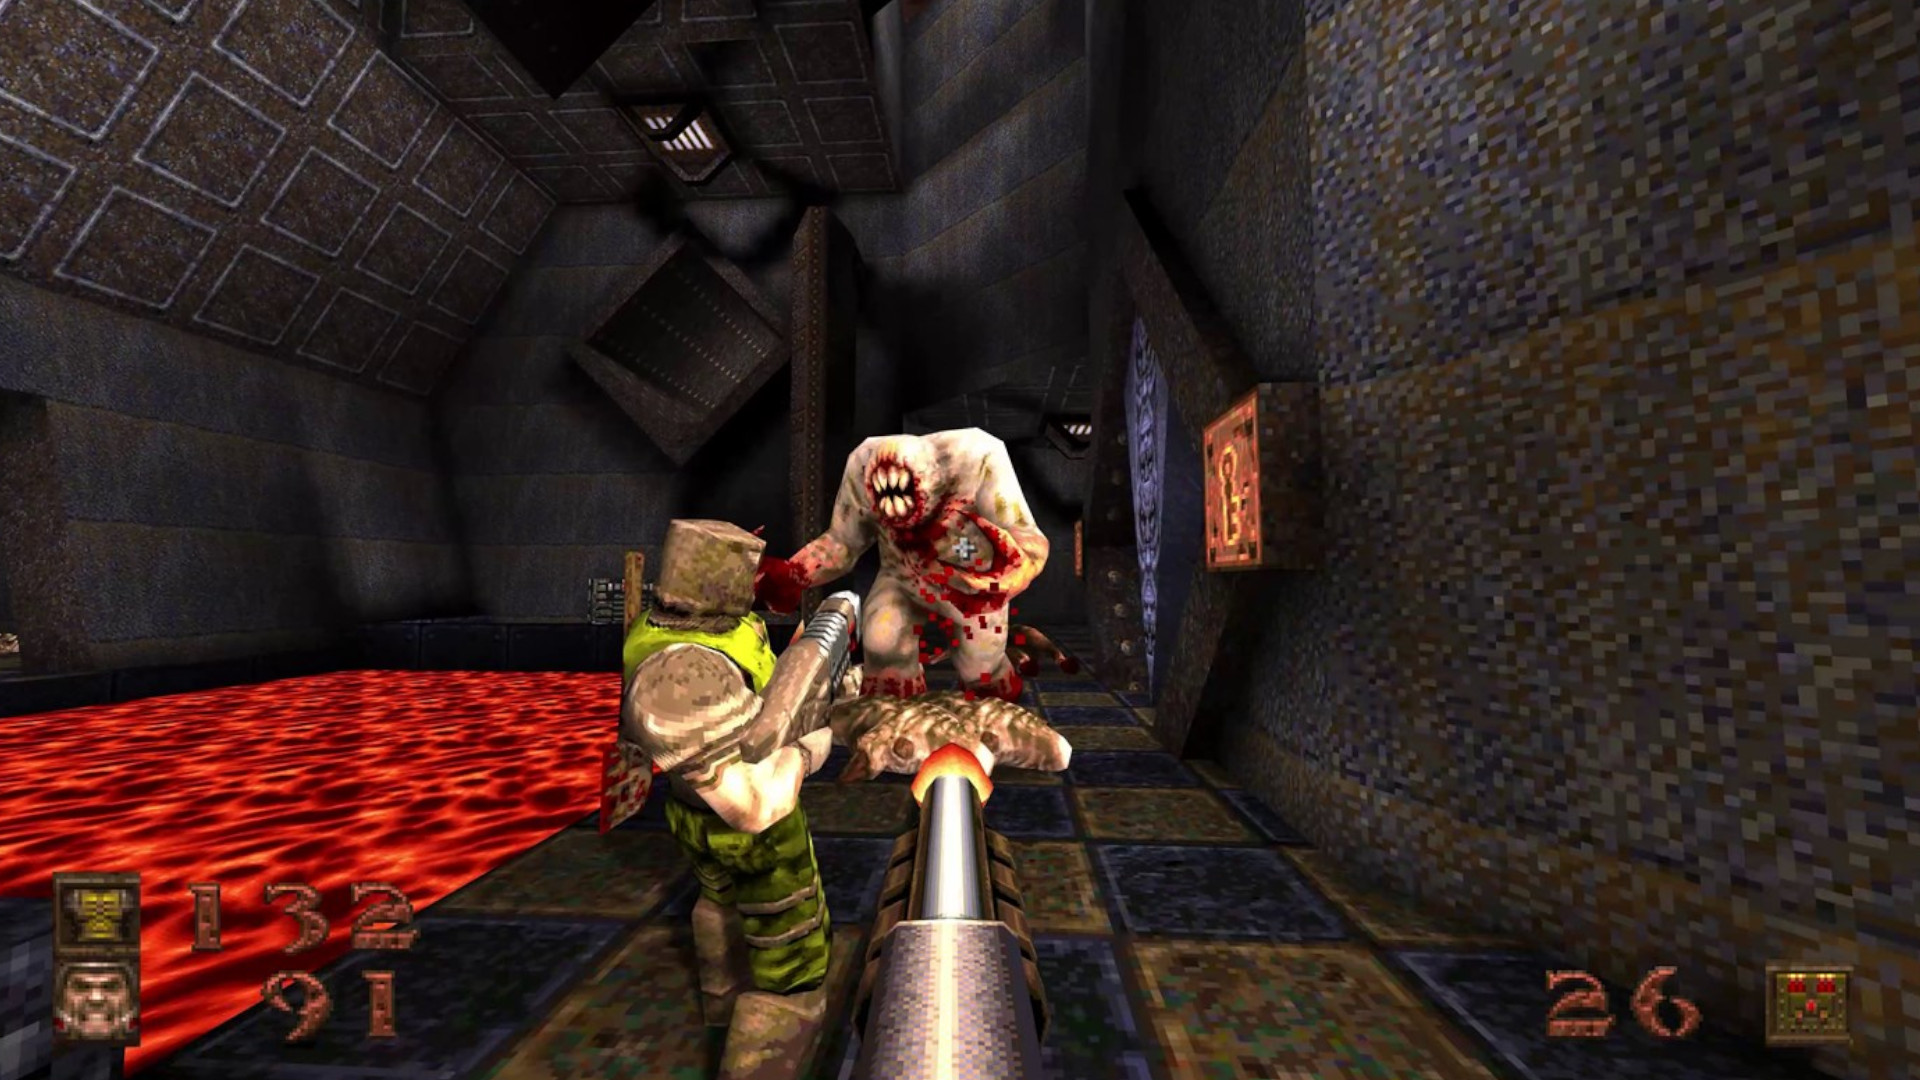 Quake remastered is real, out now, and brings Quake 64 to PC